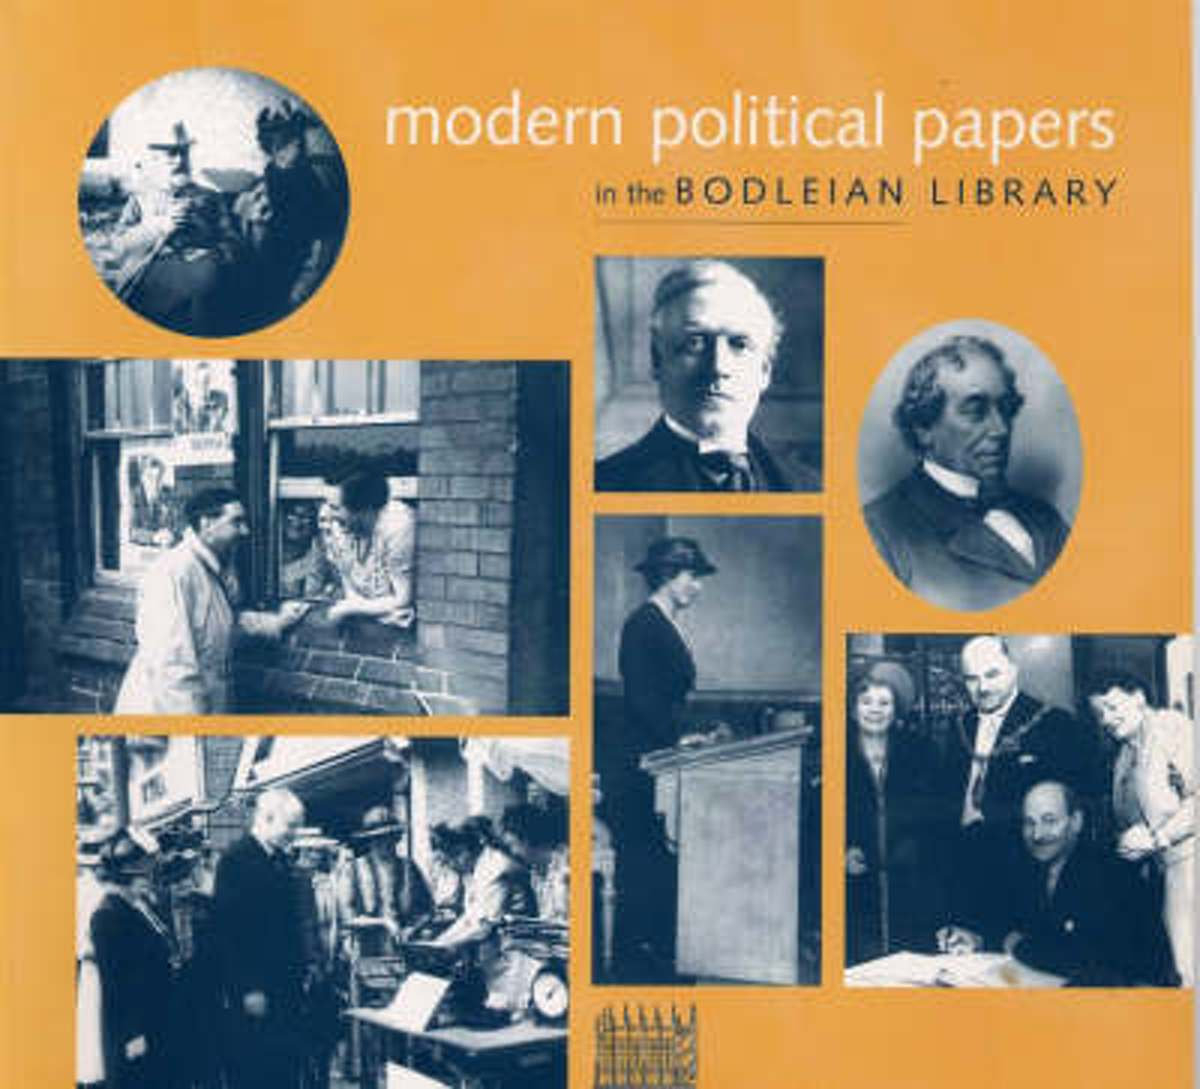 Modern Political Papers in the Bodleian Library